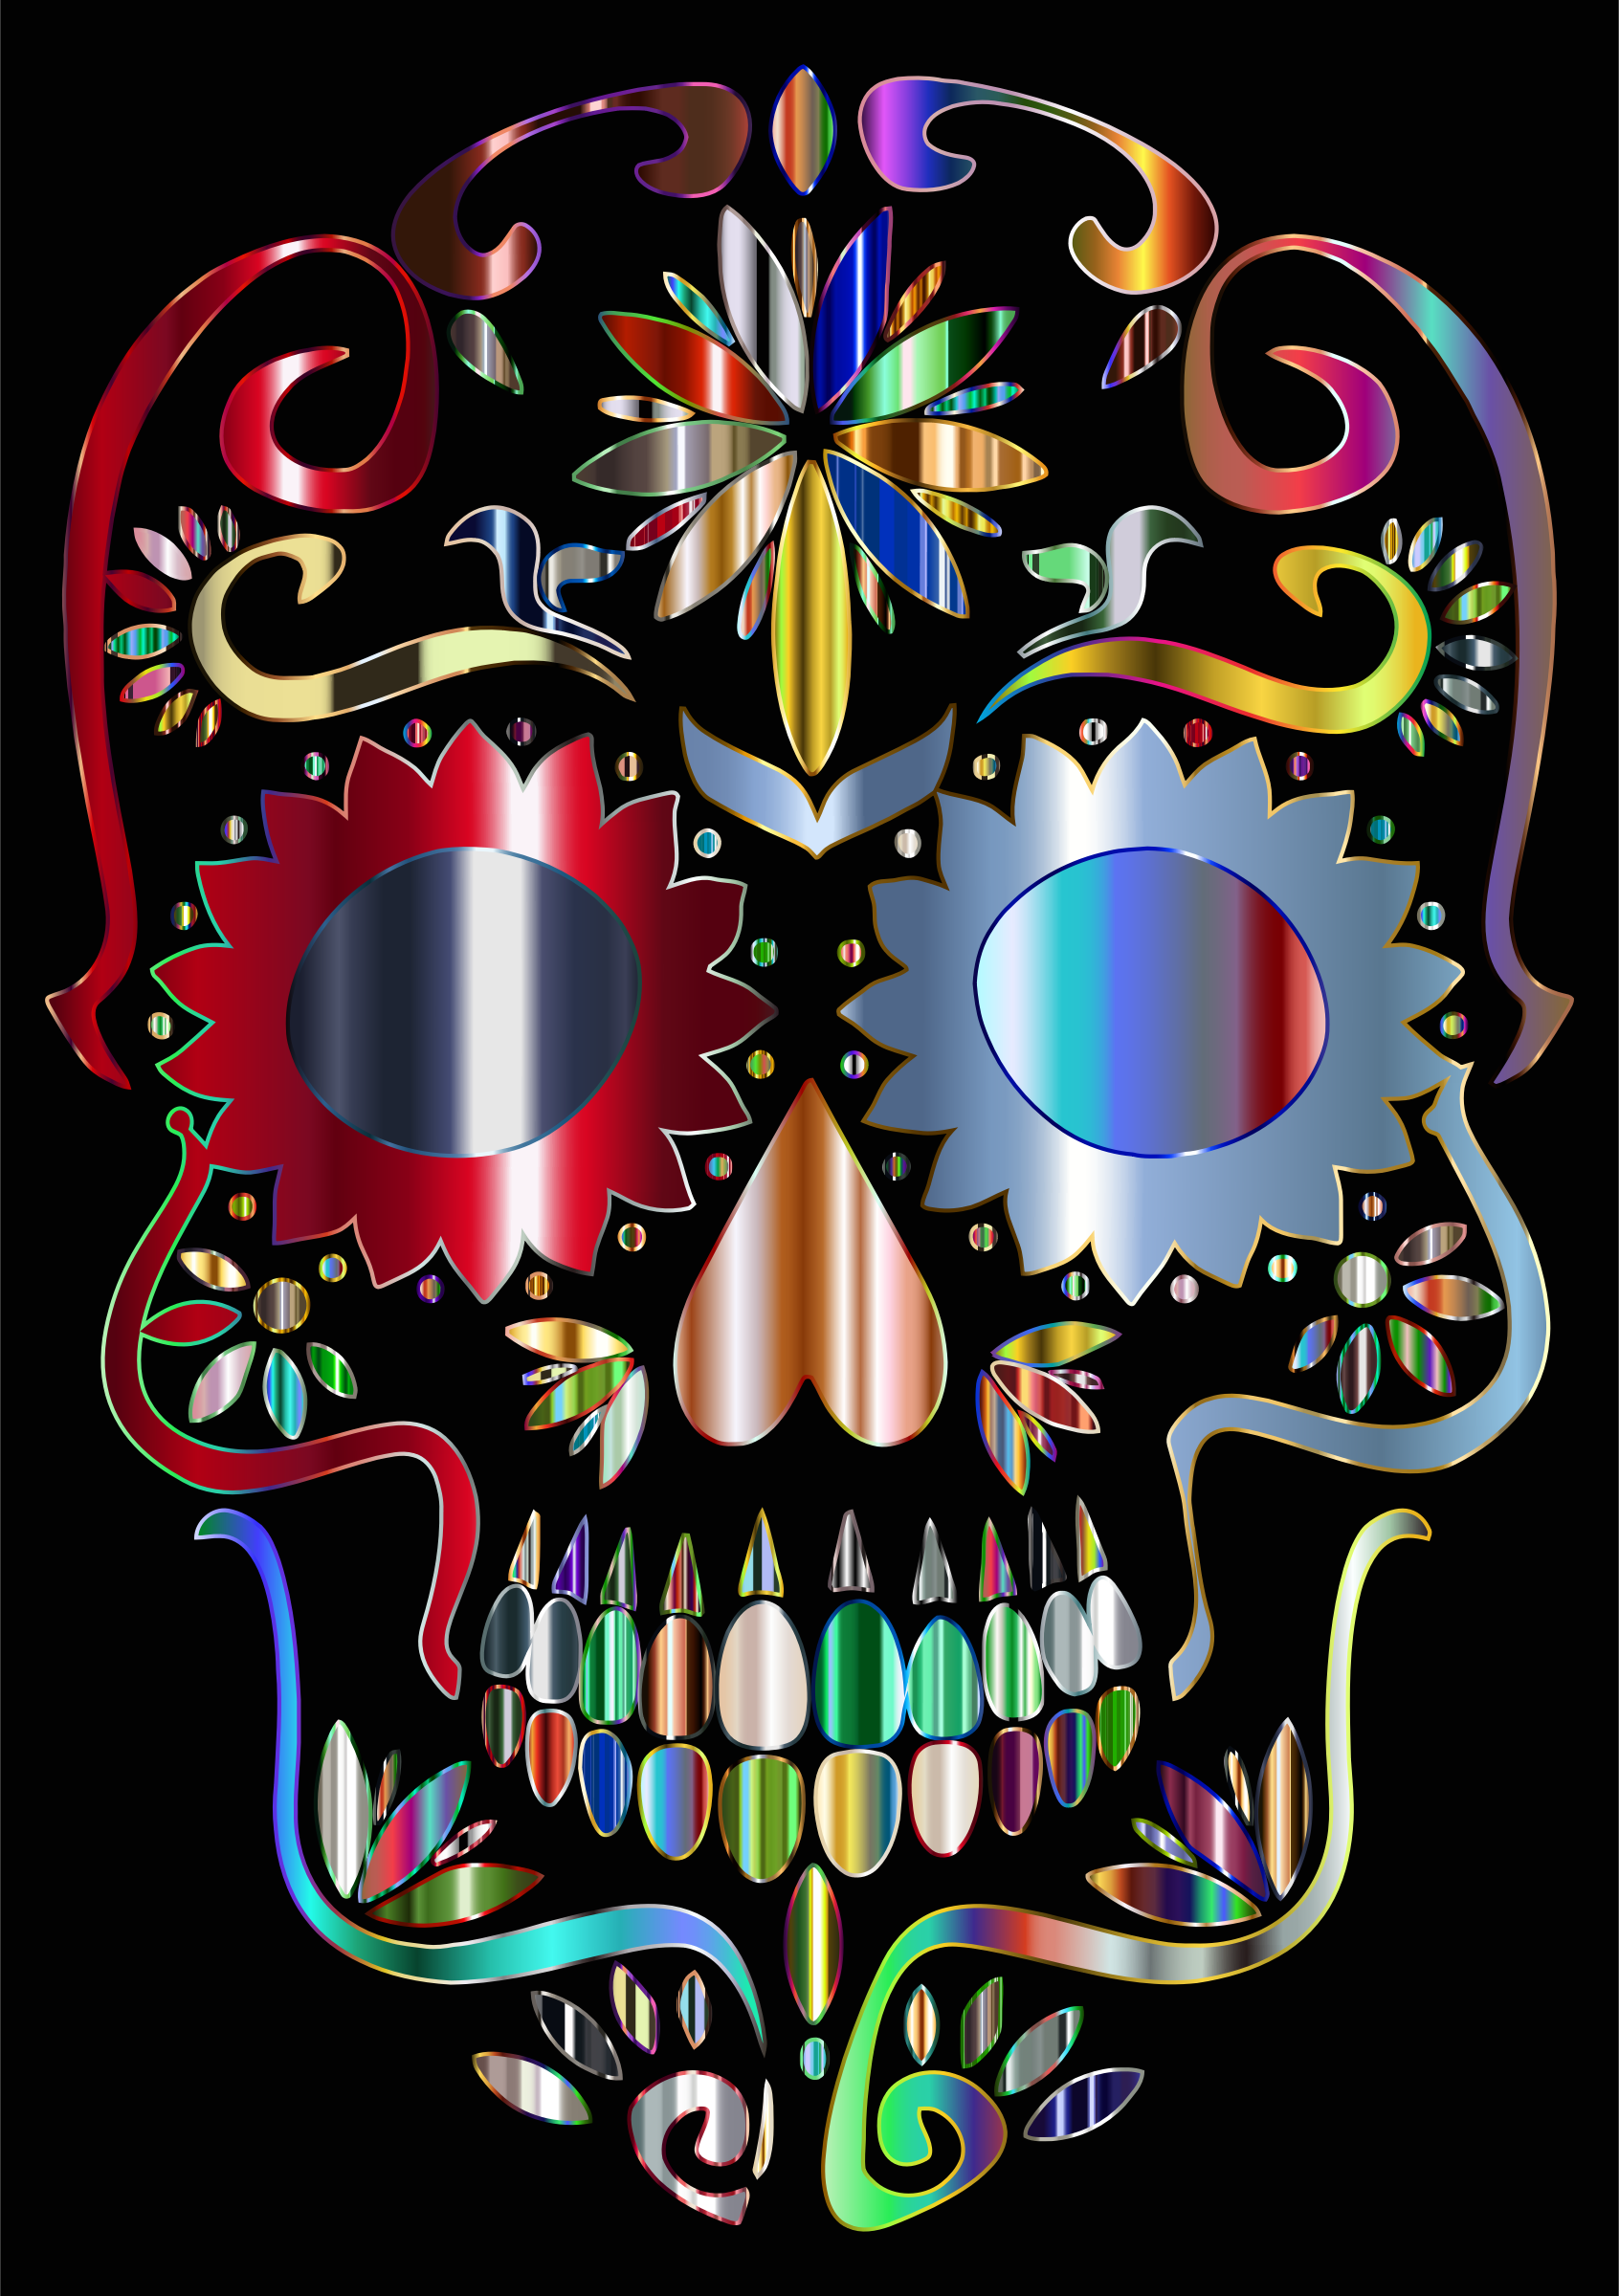 Prismatic Sugar Skull Silhouette 5 by GDJ